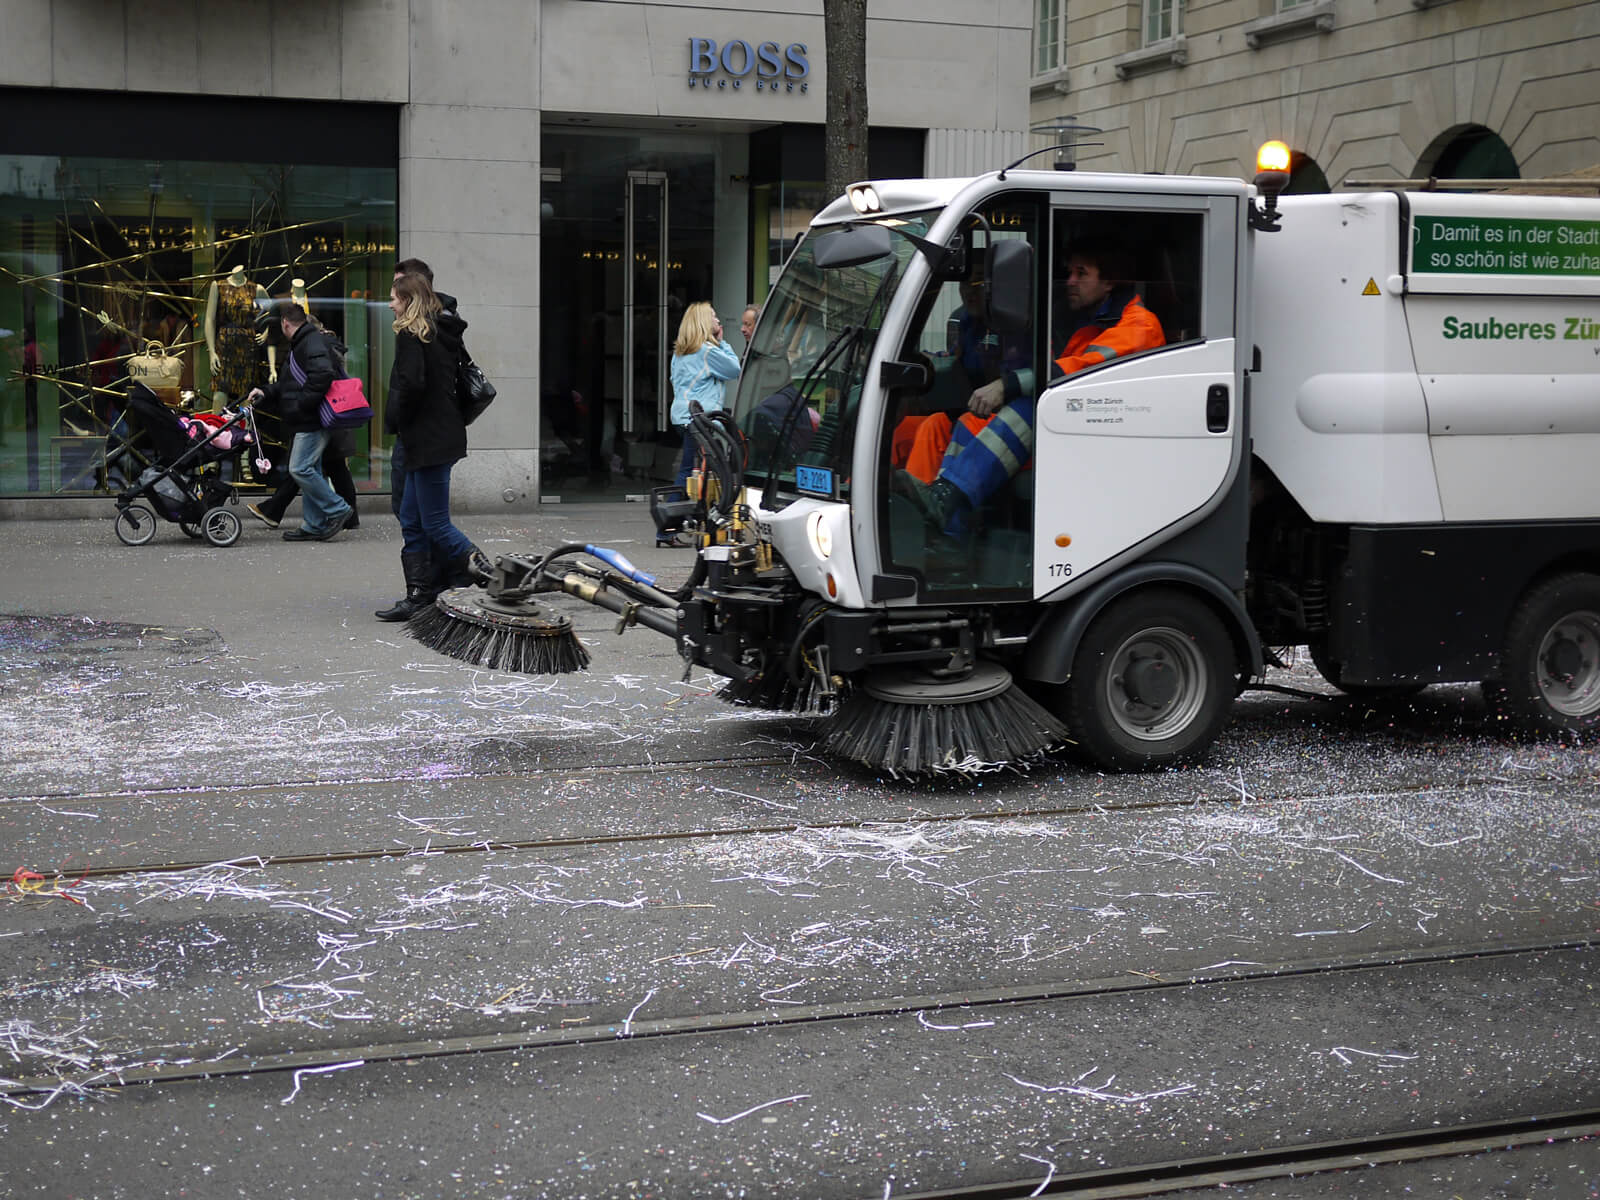 Cleaning crew on Bahnhofstrasse after the Zürich Carnival parade